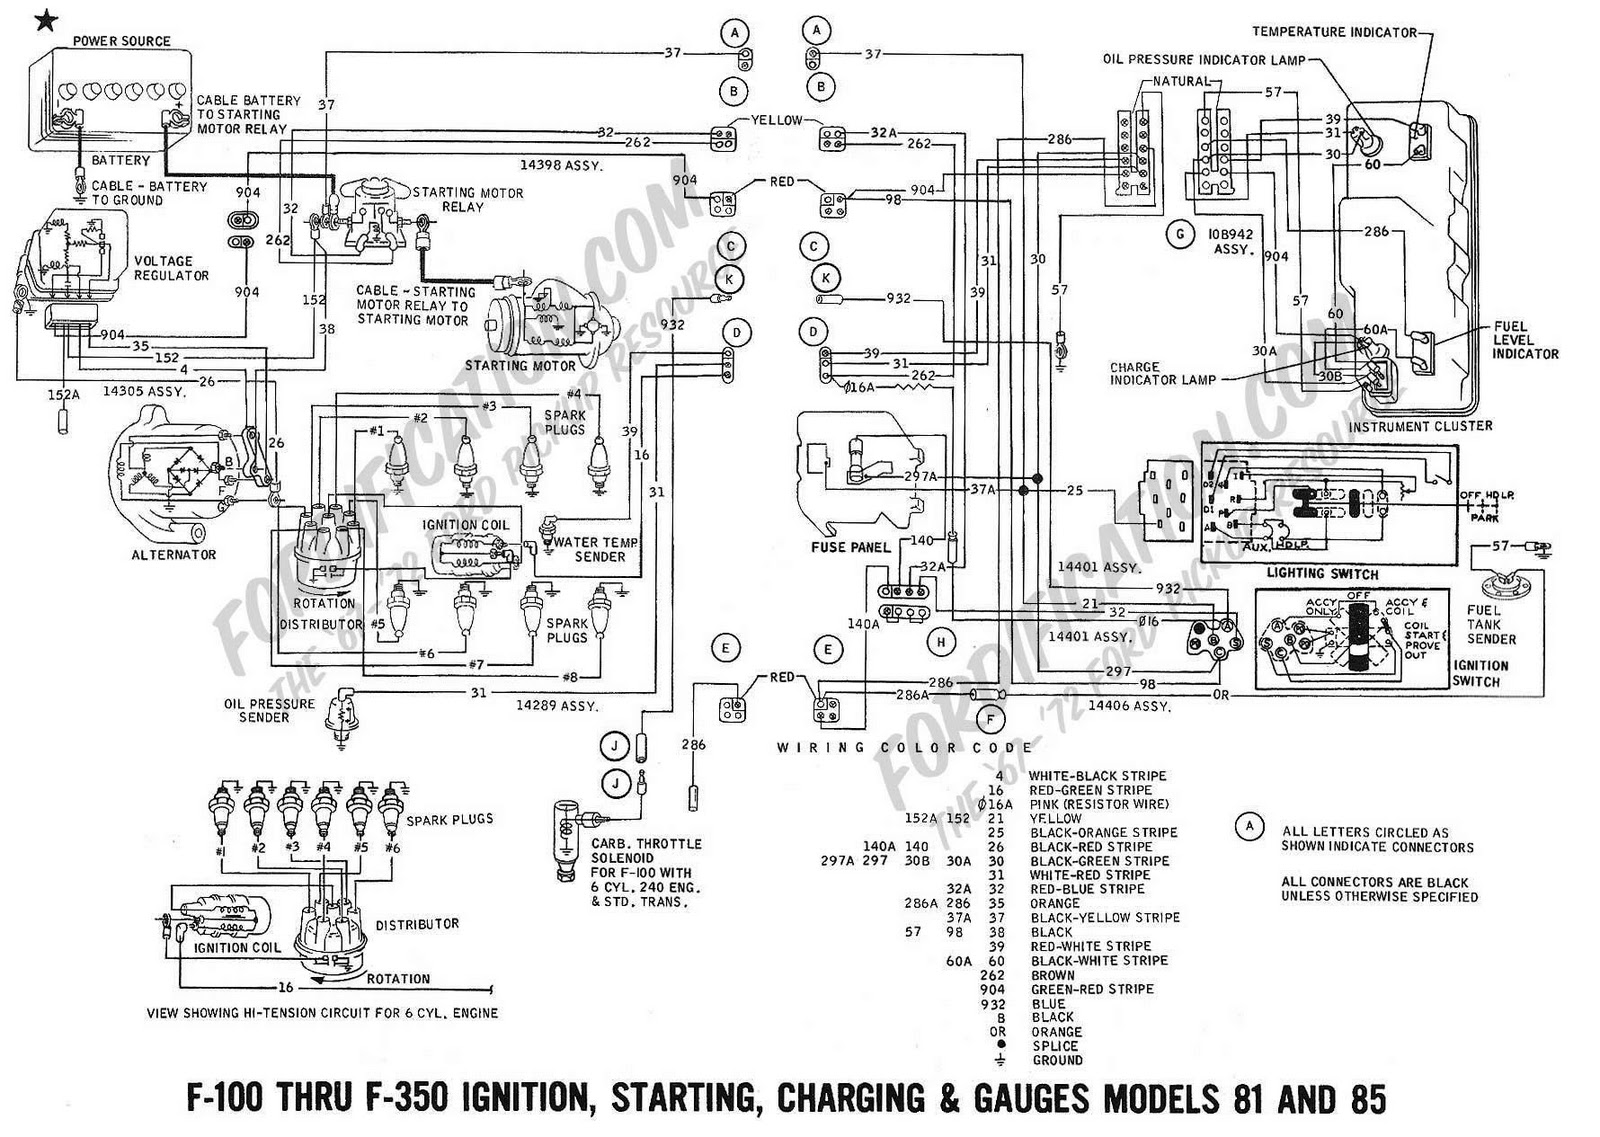 1972 Ford Bronco Alternator Wiring | Schematic Diagram Two Wire Alternator Wiring Diagram Ford on 70 ford f100 alternator diagram, ford internal regulator alternator diagram, 1981 f150 alternator wire diagram, ford 3 wire alternator diagram, 1980 ford alternator connector, ford 8n tractor wiring diagram, 1980 ford charging diagram, 1990 ford ranger engine diagram, 1980 ford 300 alternator wiring, 1972 ford alternator diagram, 1978 ford 1g alternator diagram, 1980 ford truck alternator diagram, alternator voltage regulator diagram,